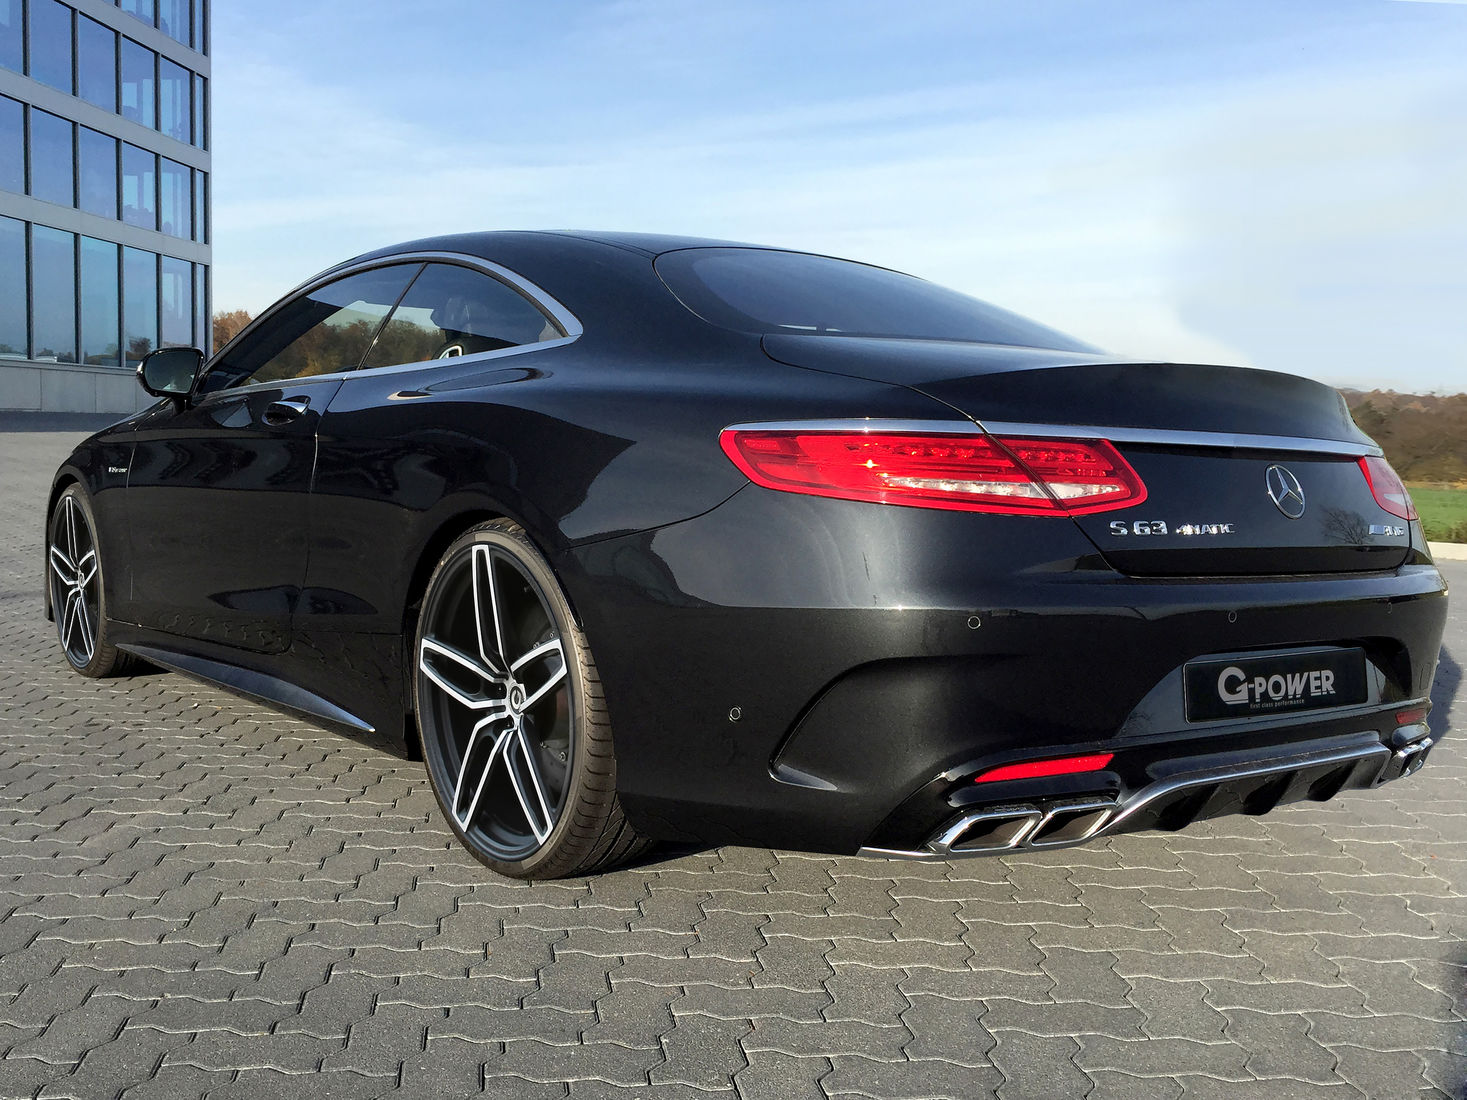 Mercedes S63 Amg Coupe >> Mercedes-Benz S63 AMG Coupe by G-Power Makes 705 HP ...